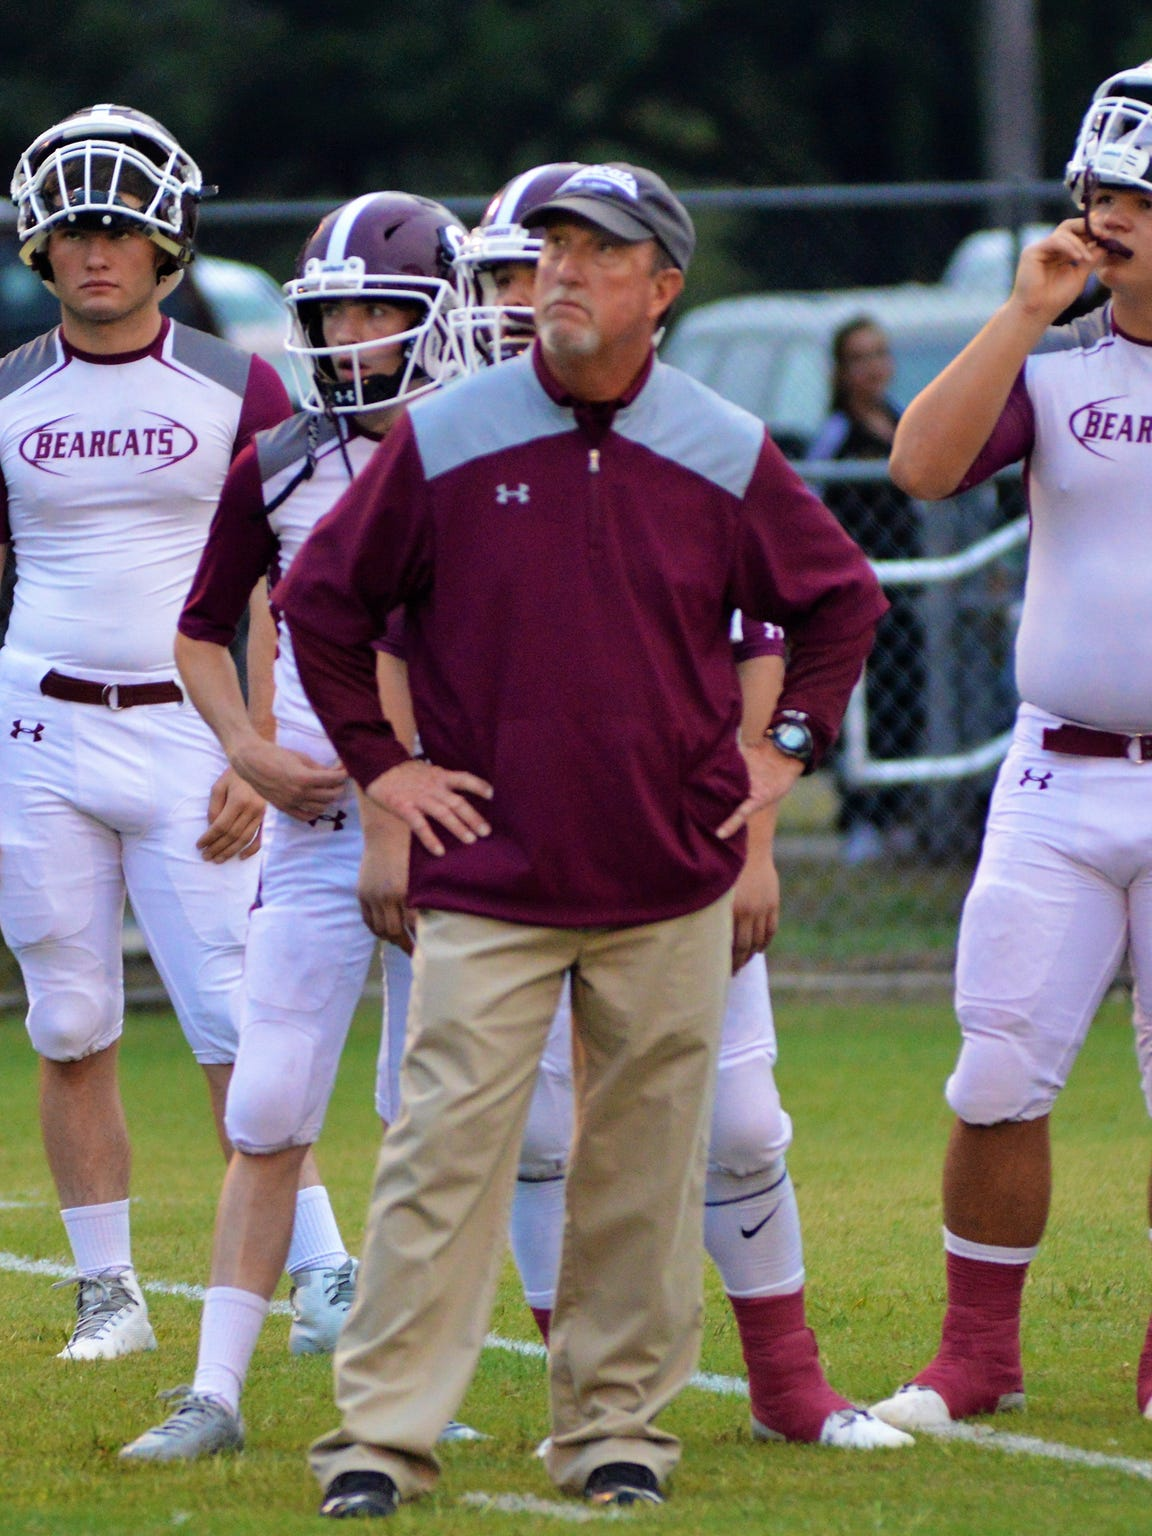 De Leon coach David Yeager retired prior to the 2019 season. Yeager spent seven years leading the Bearcats, going 52-33, as part of a 32-year coaching career.